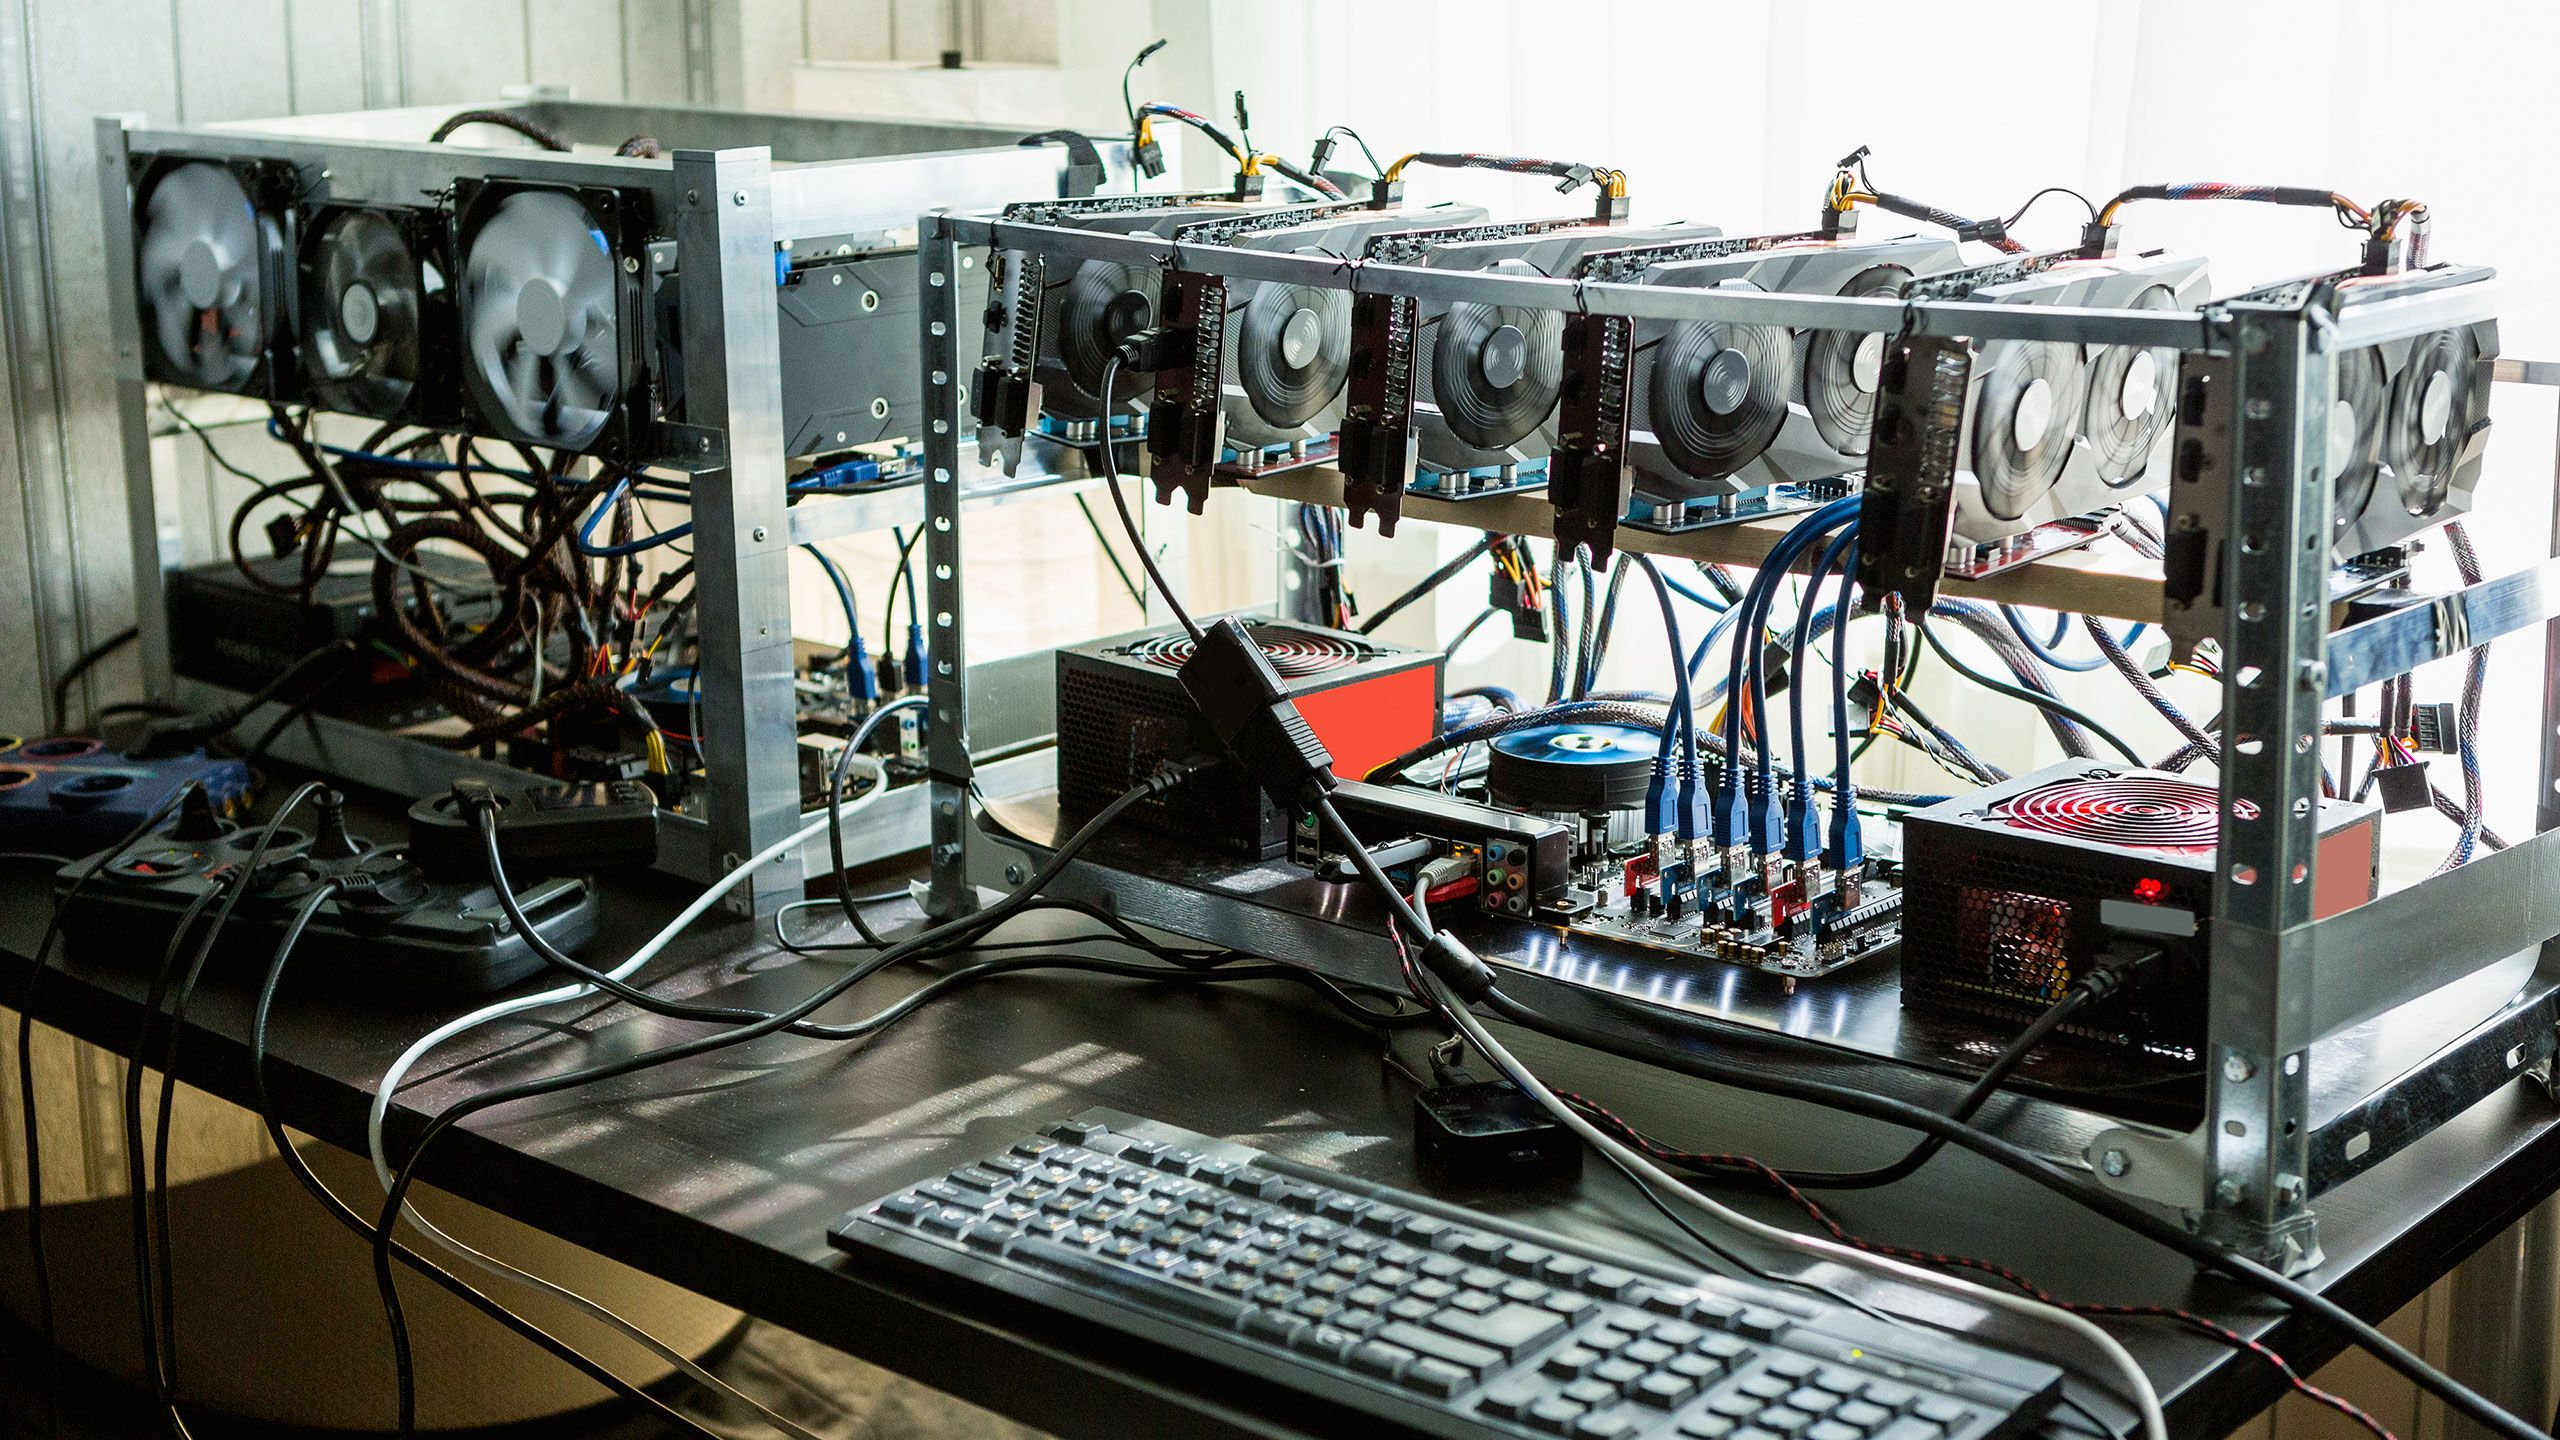 cryptocurrency mining using a pc